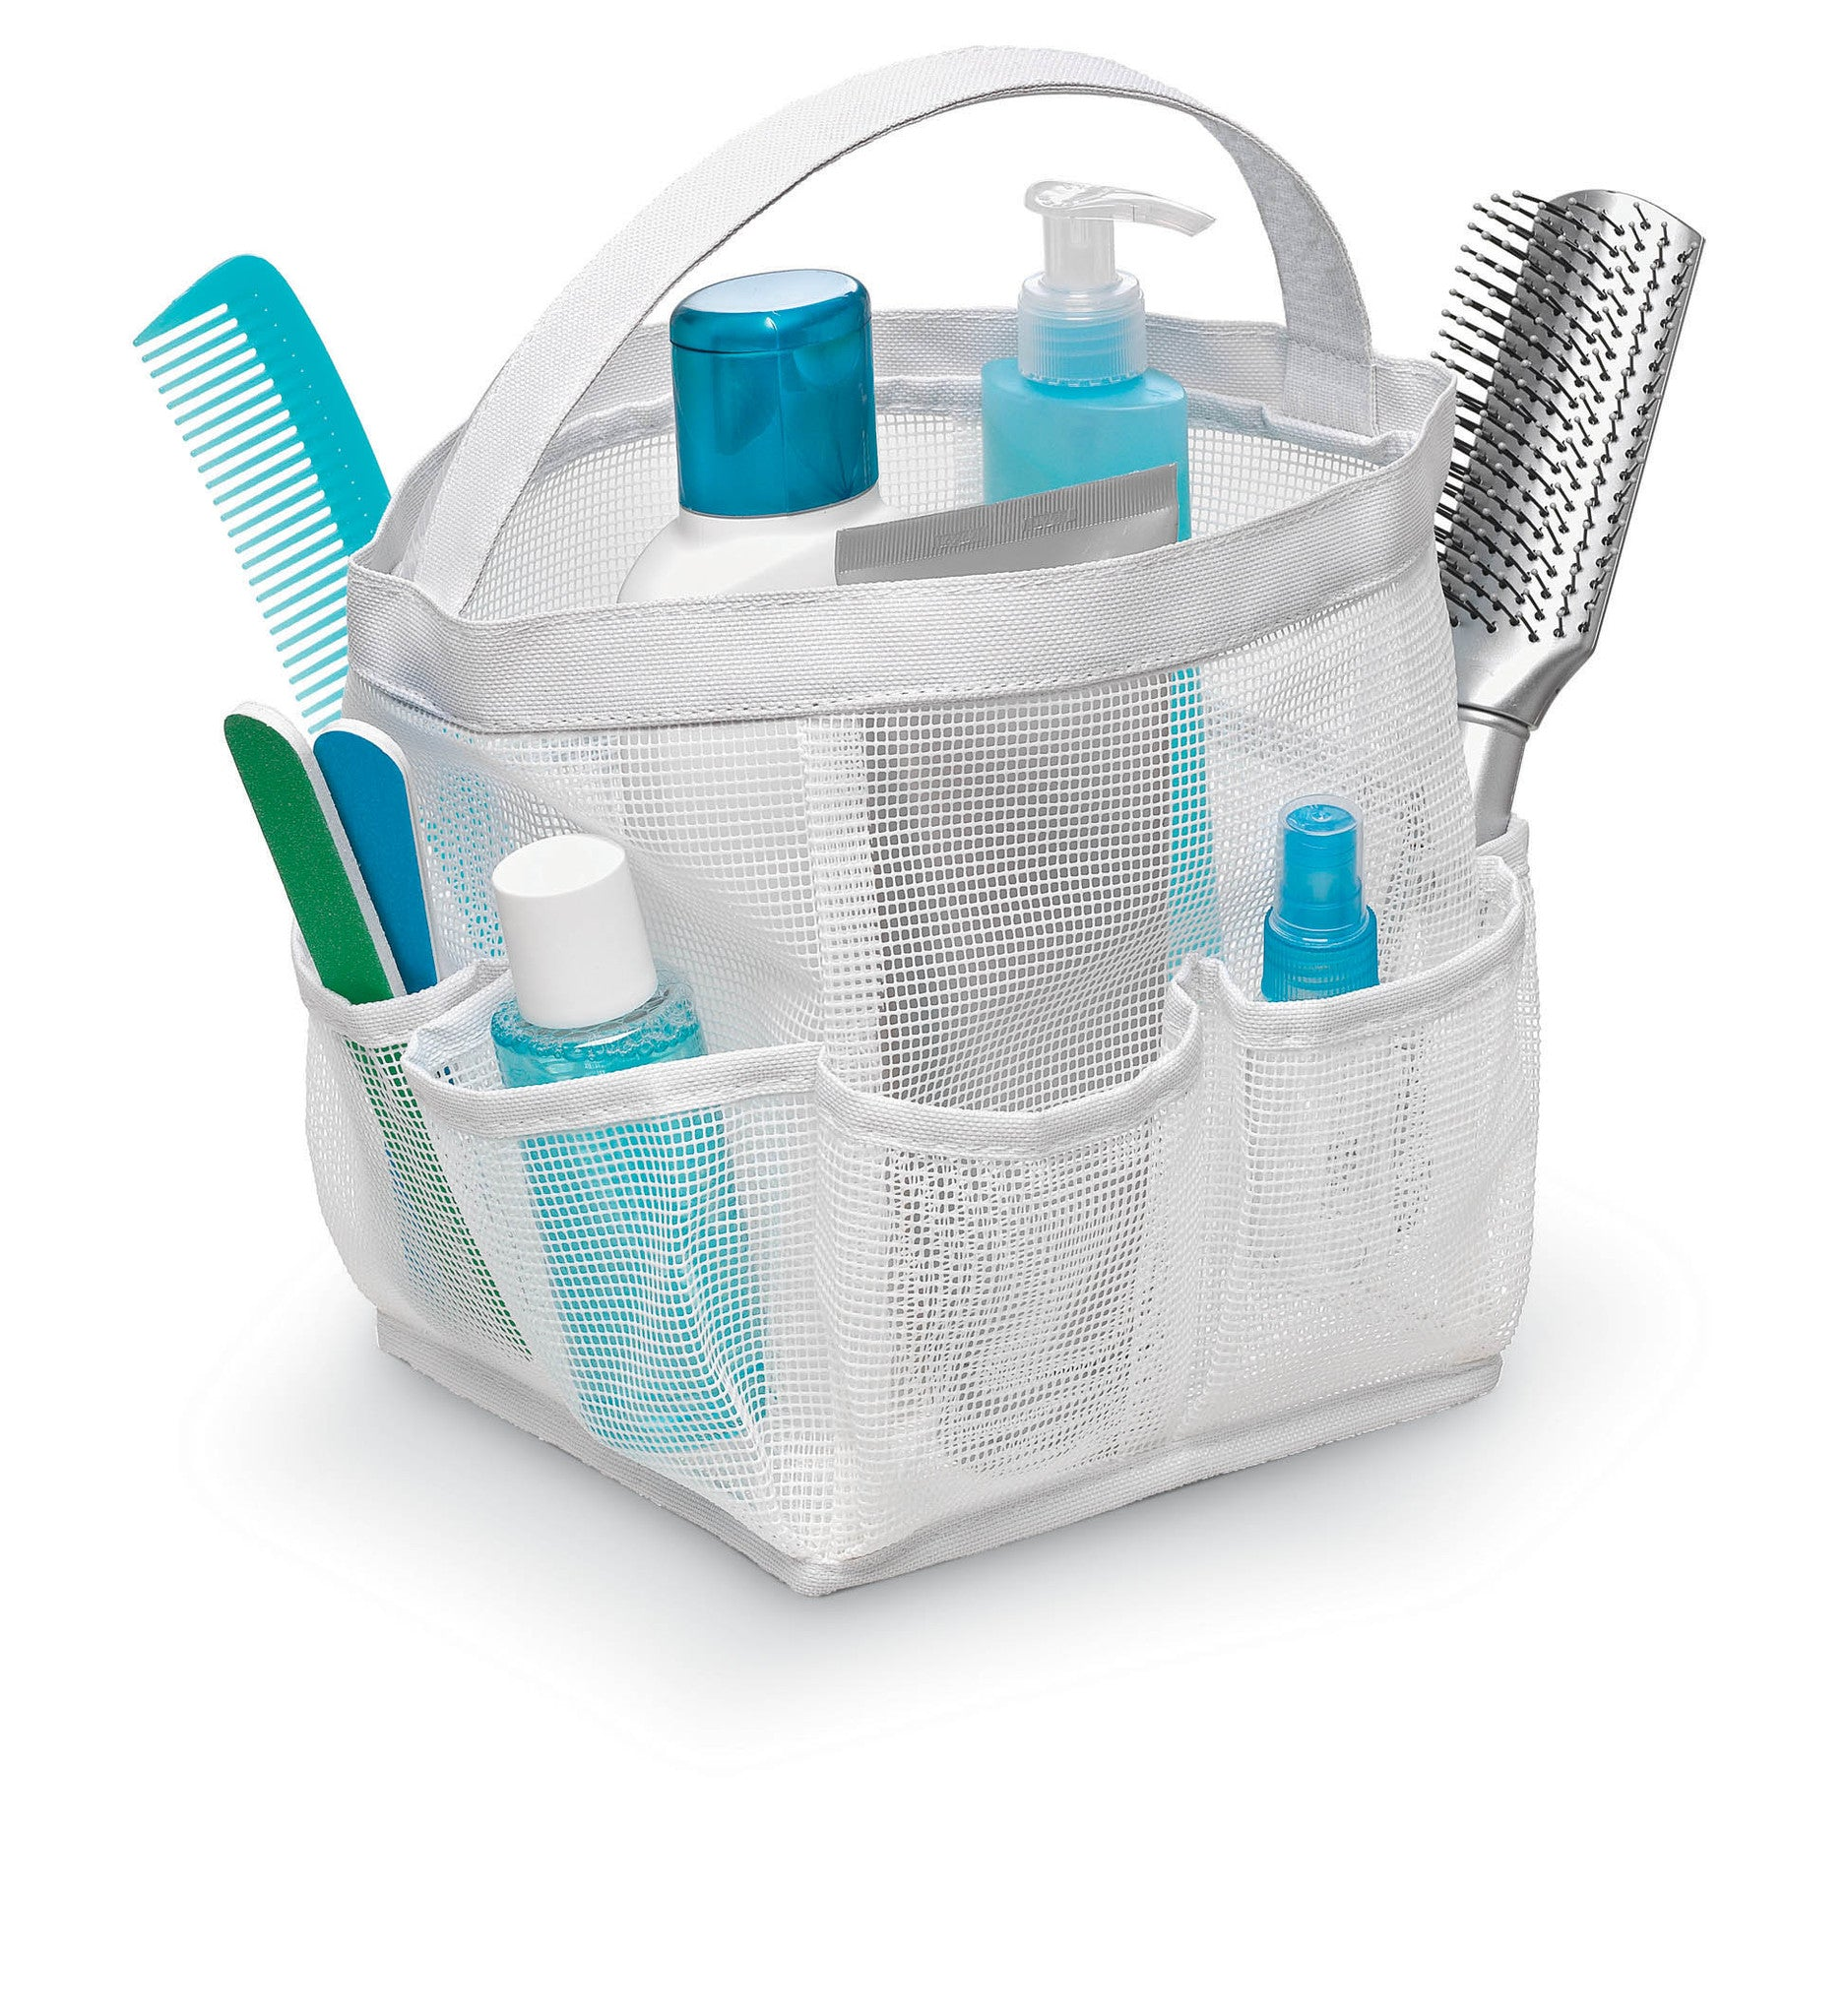 Mesh organizer Caddy - White – Home Storage Direct